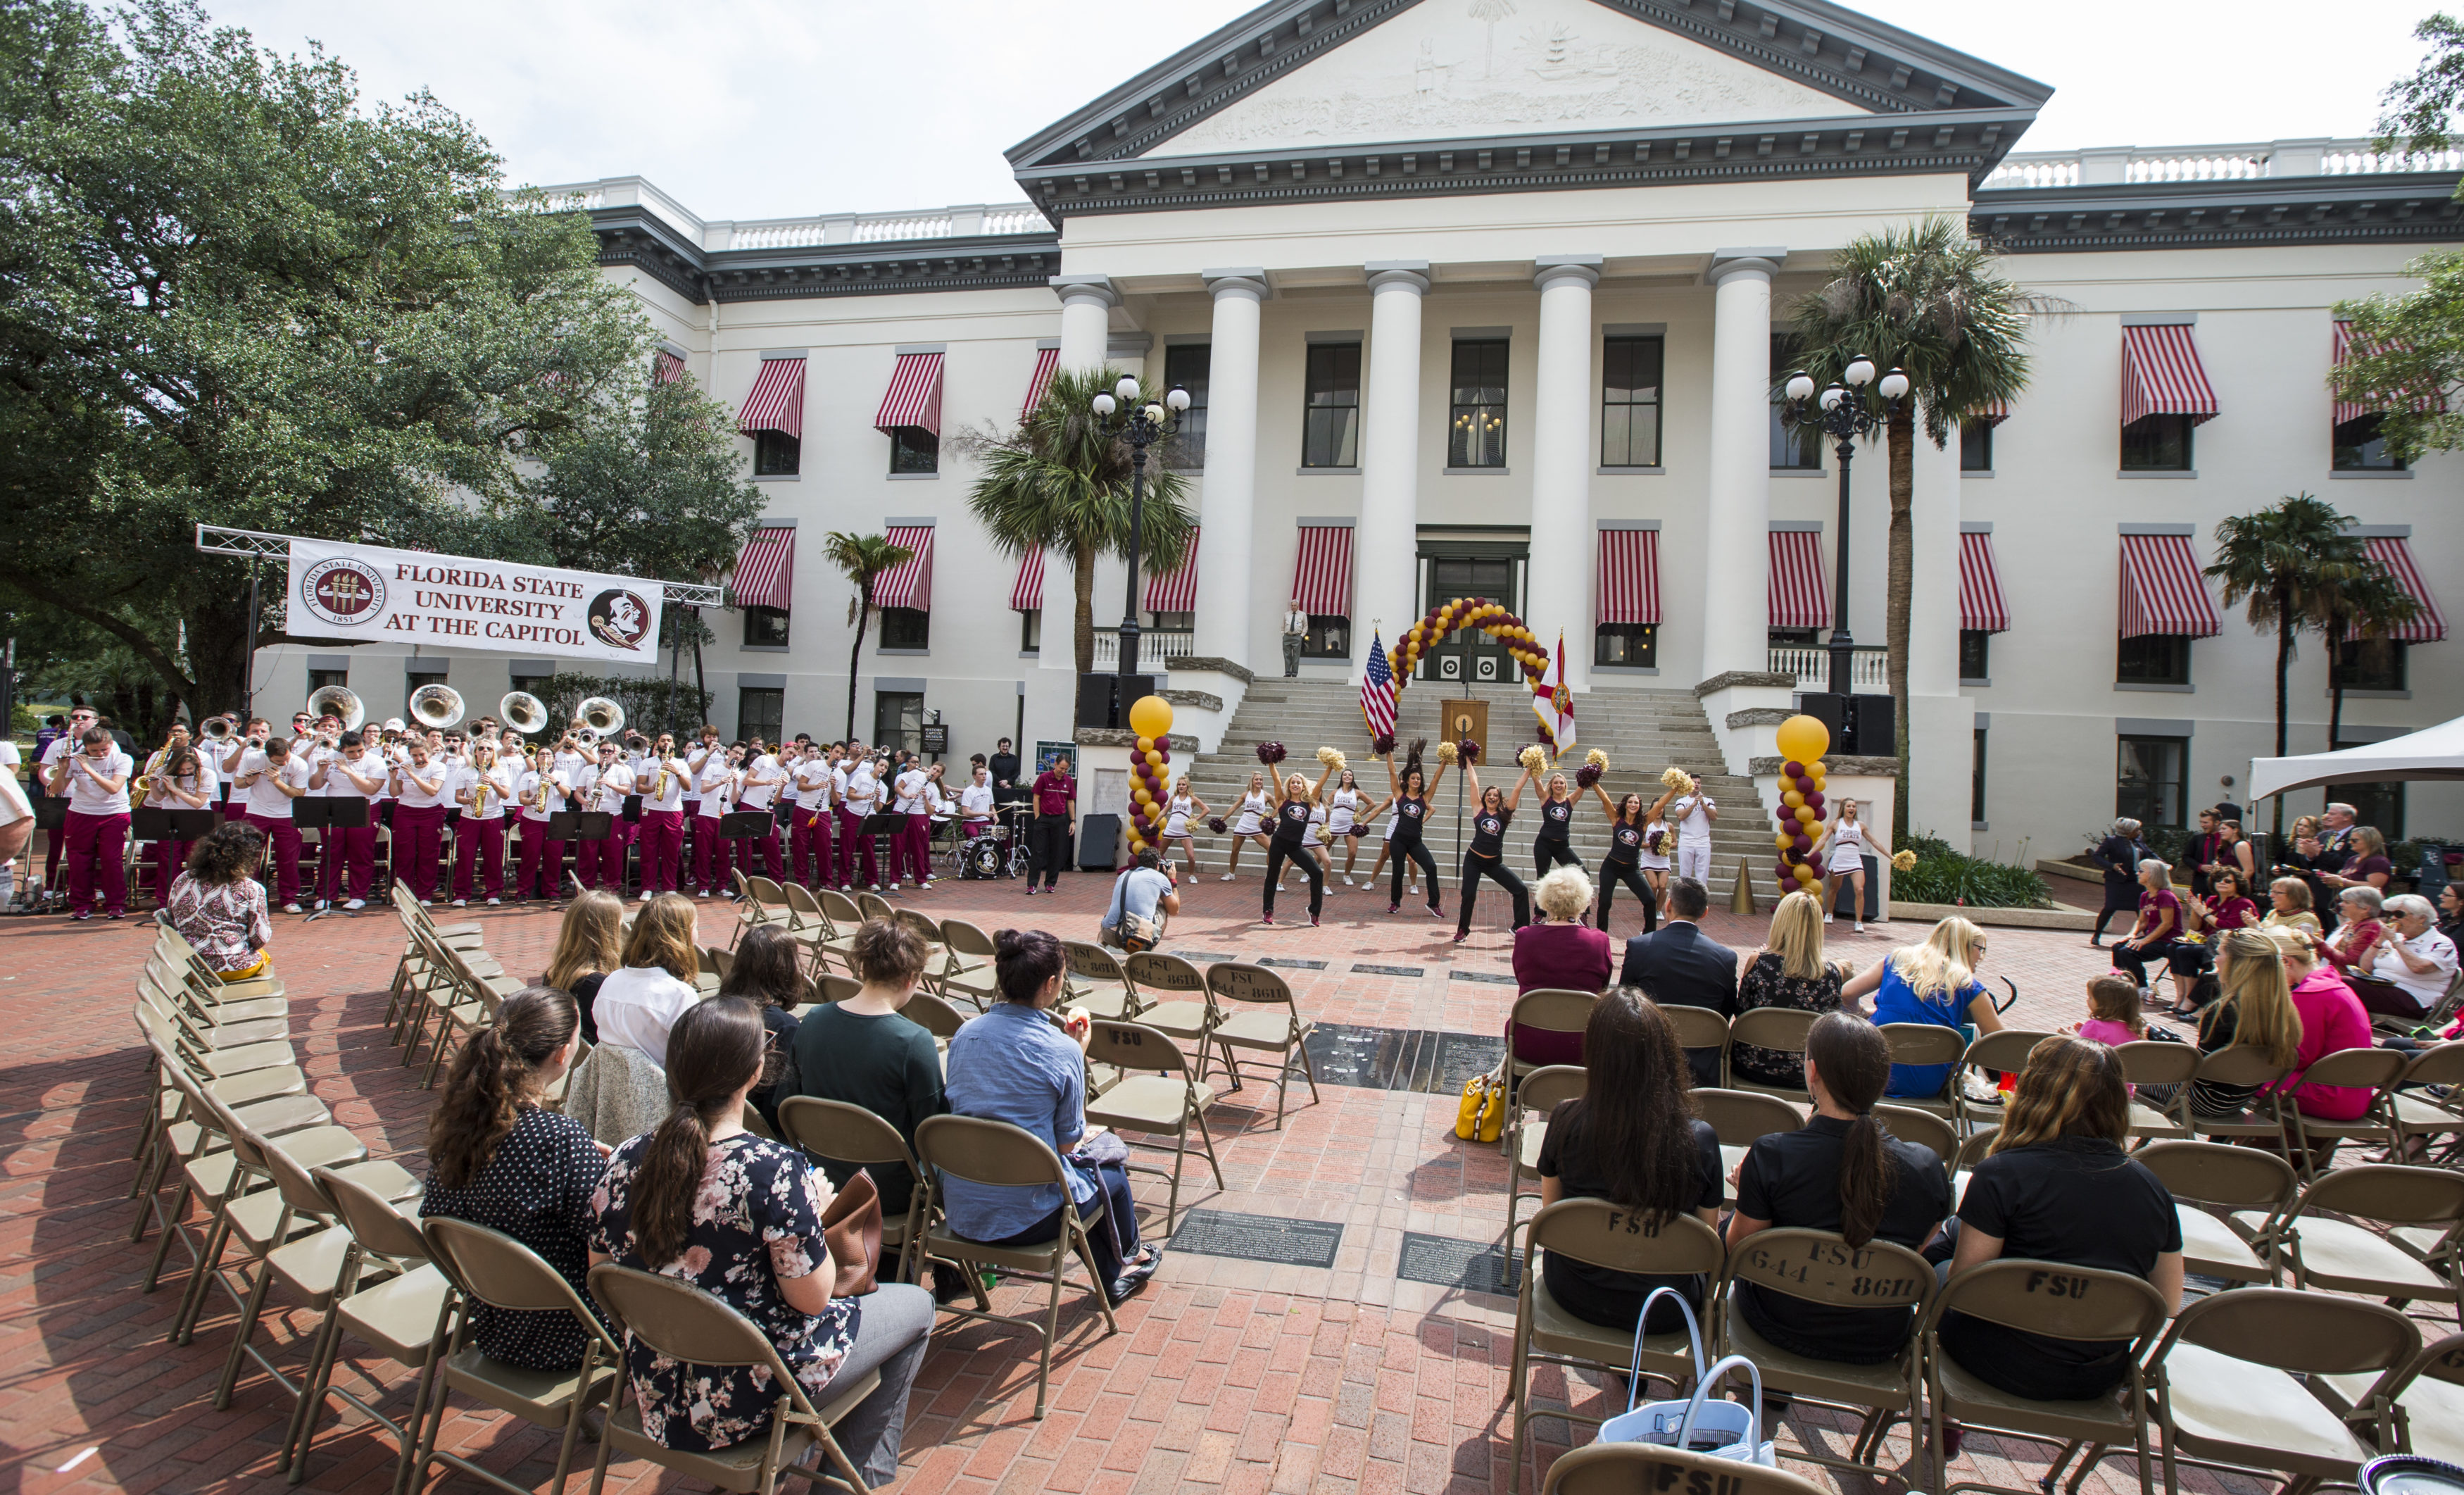 Florida State University Day at the Florida Capitol